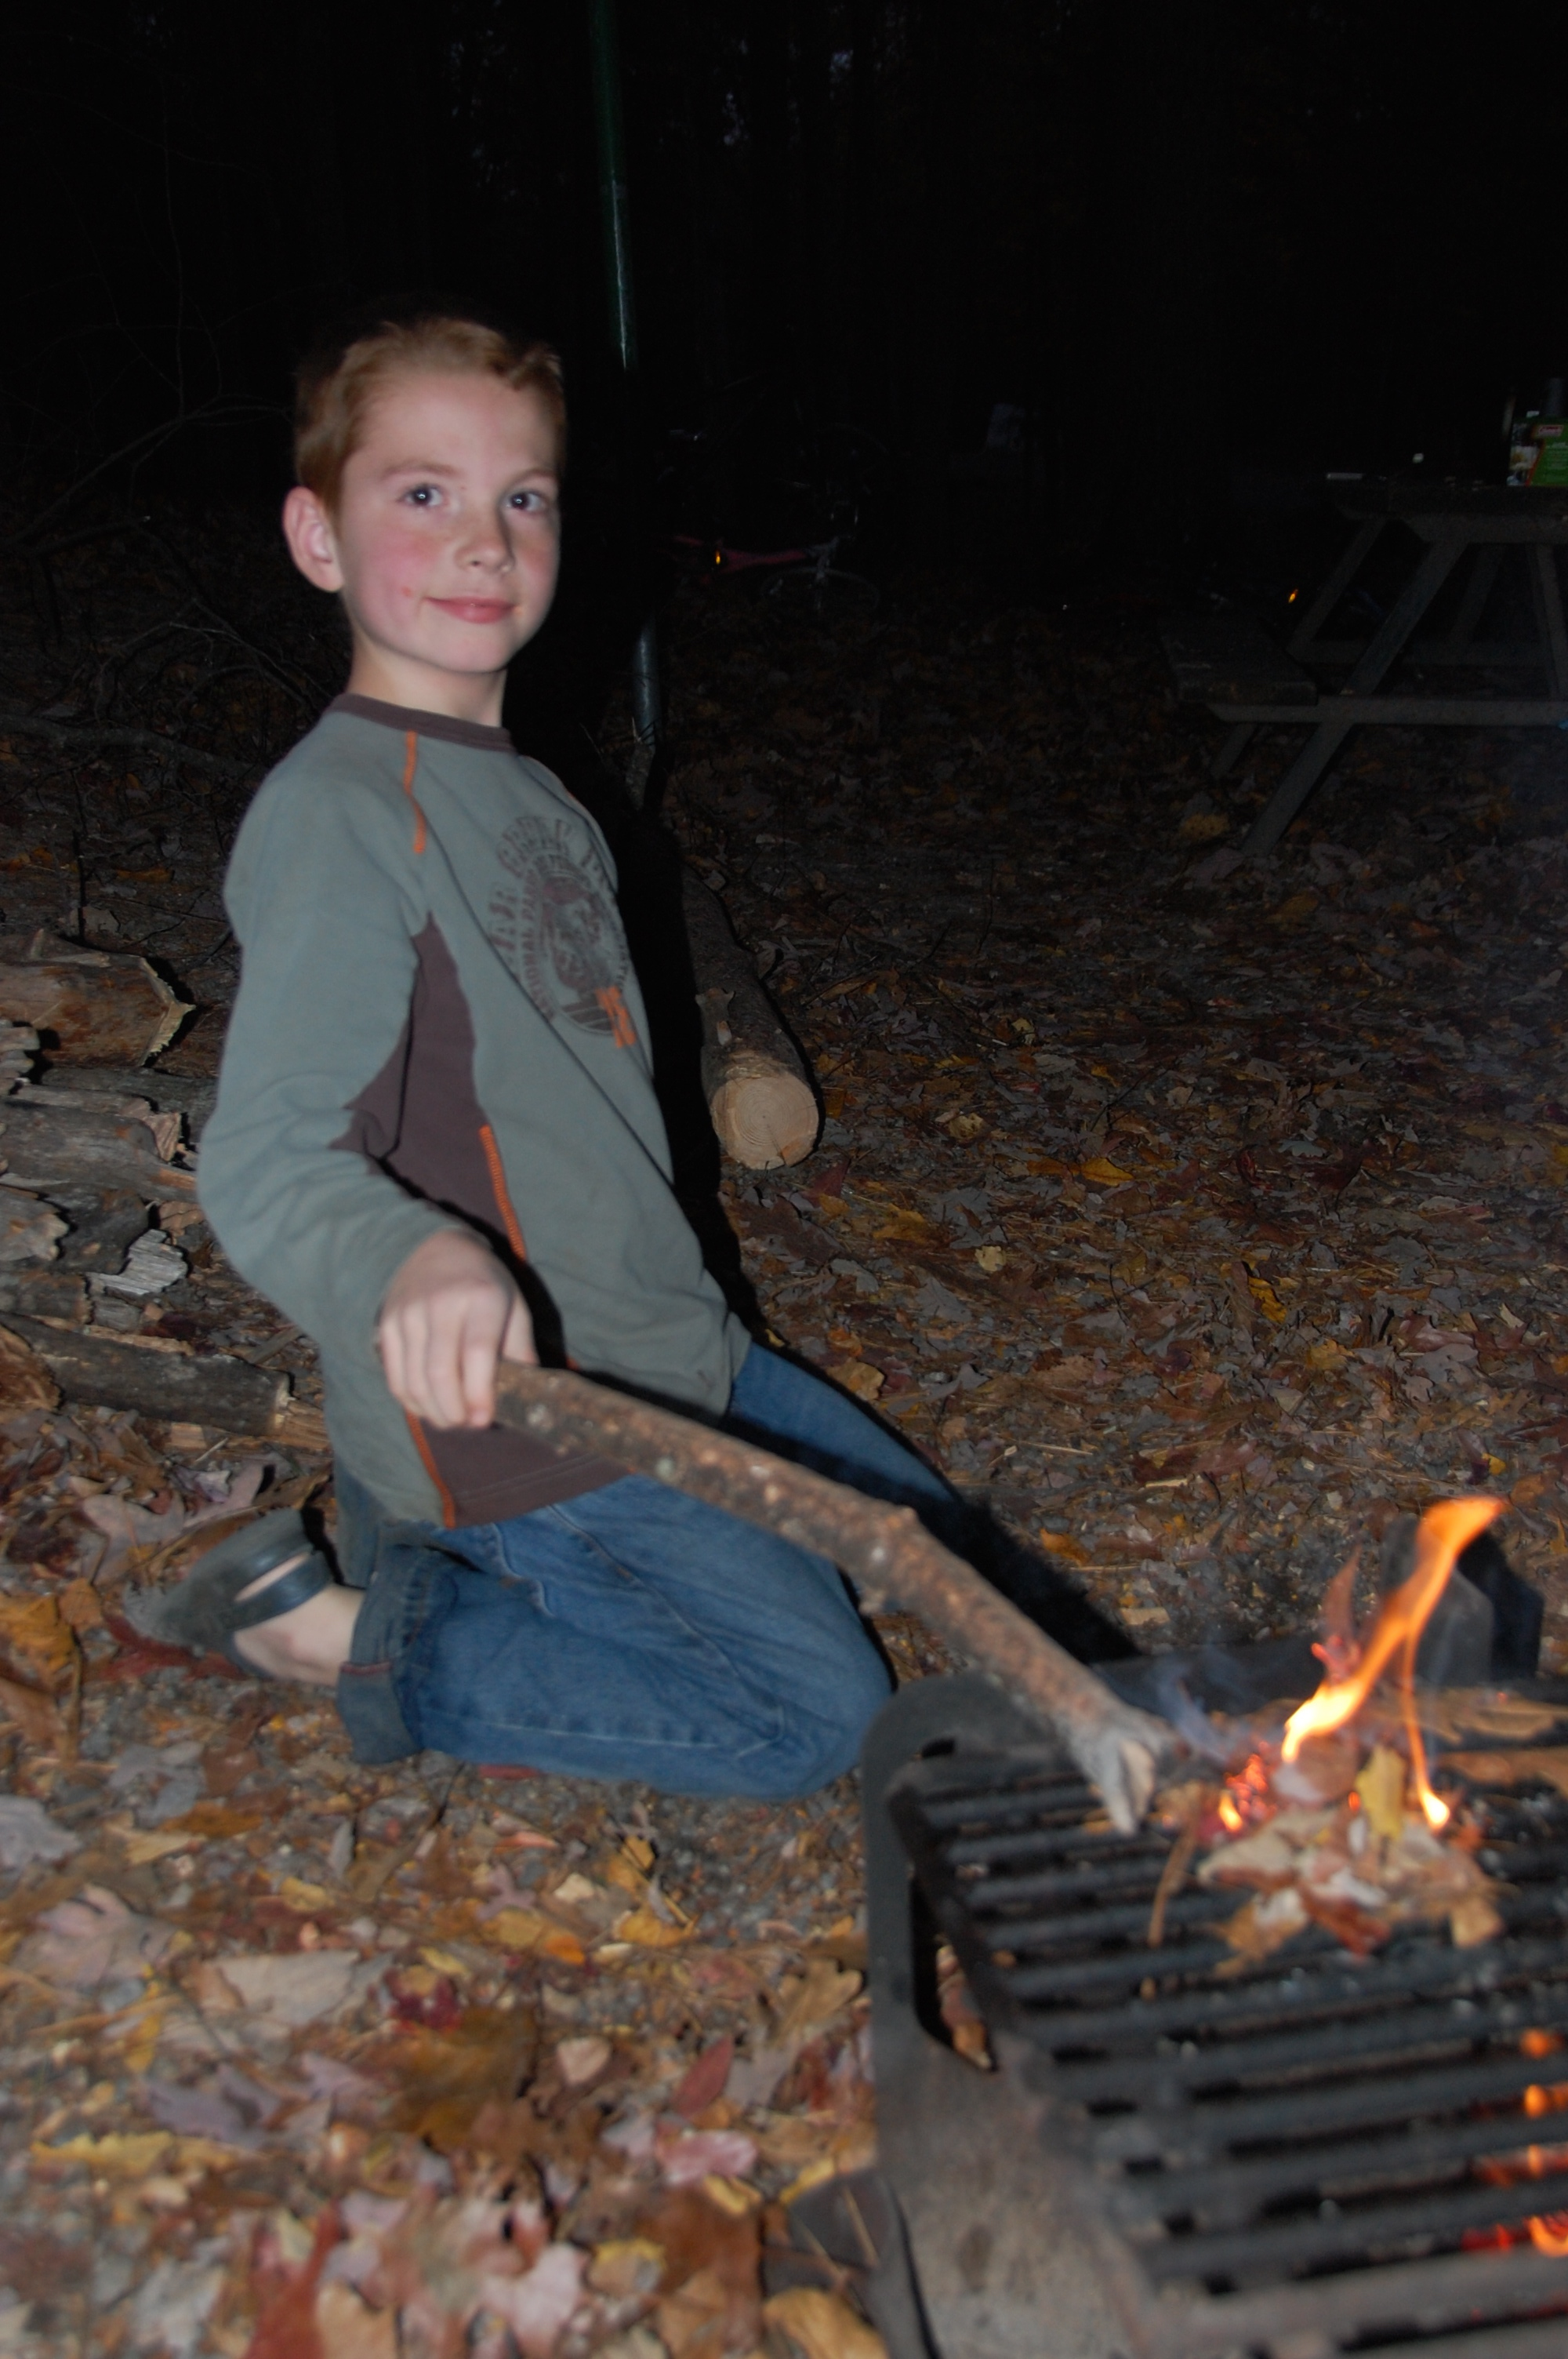 He never got tired of playing in the fire.